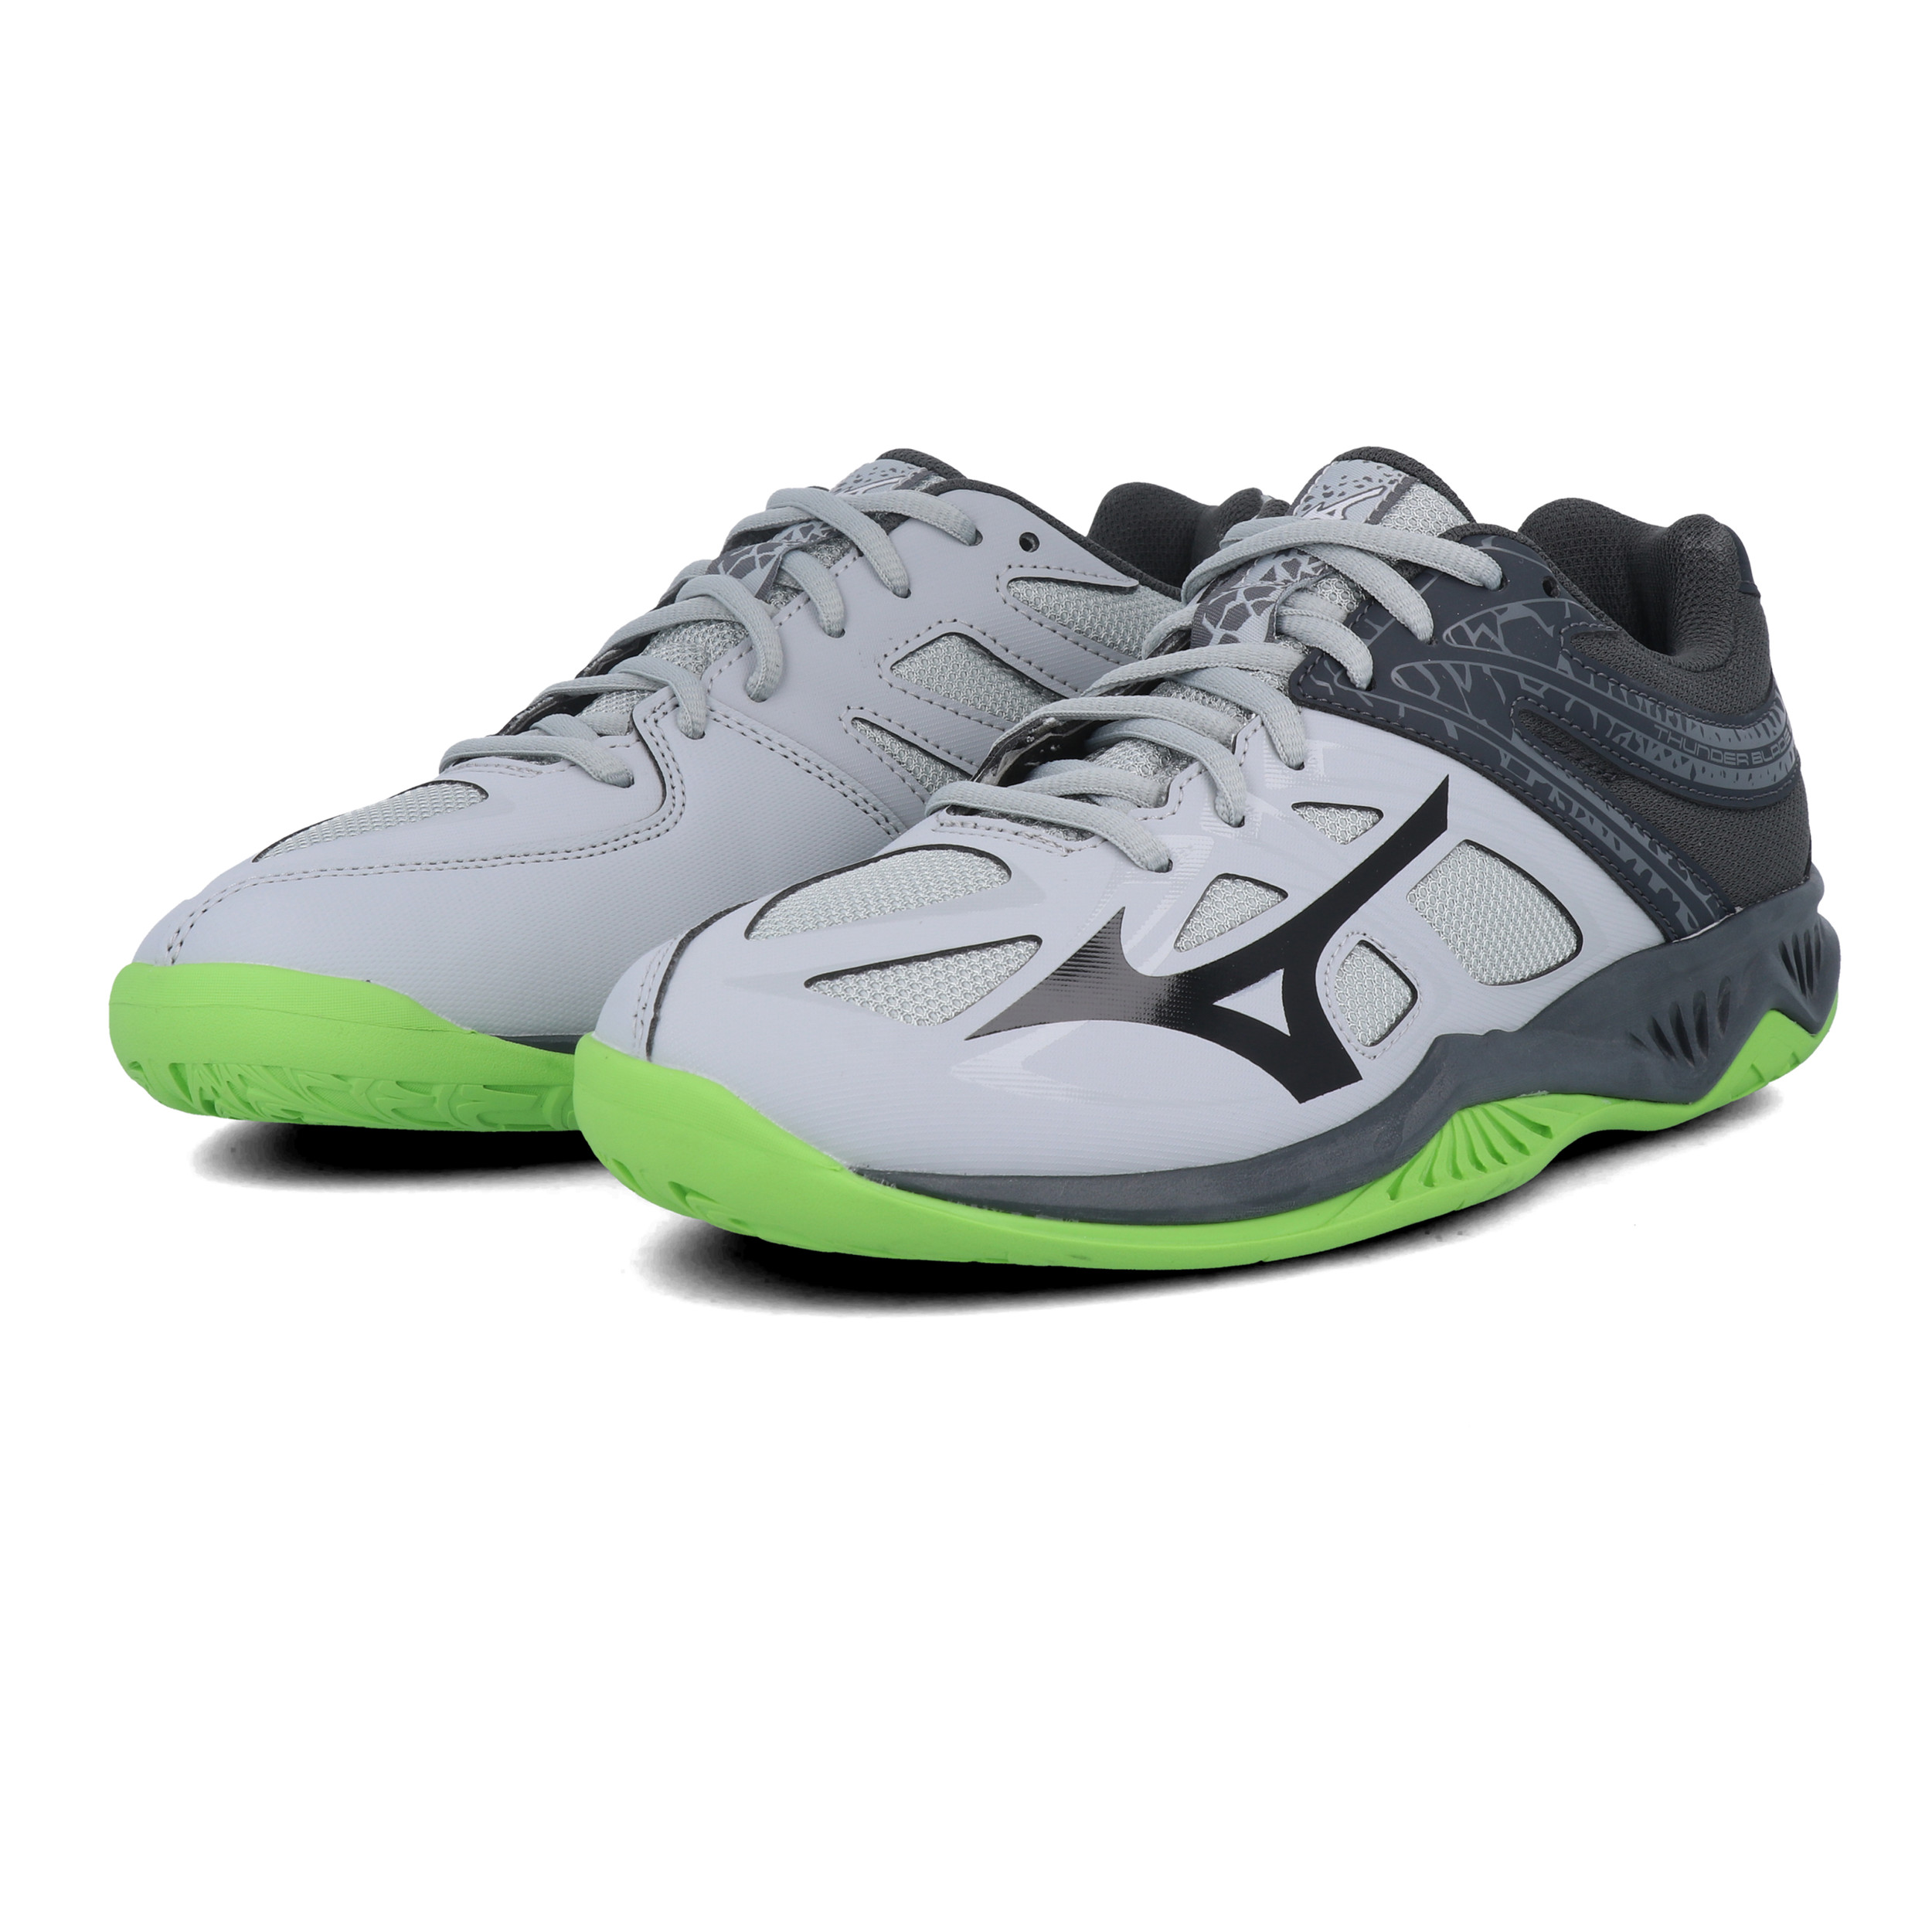 Mizuno Thunder Blade 2 Indoor Court Shoes